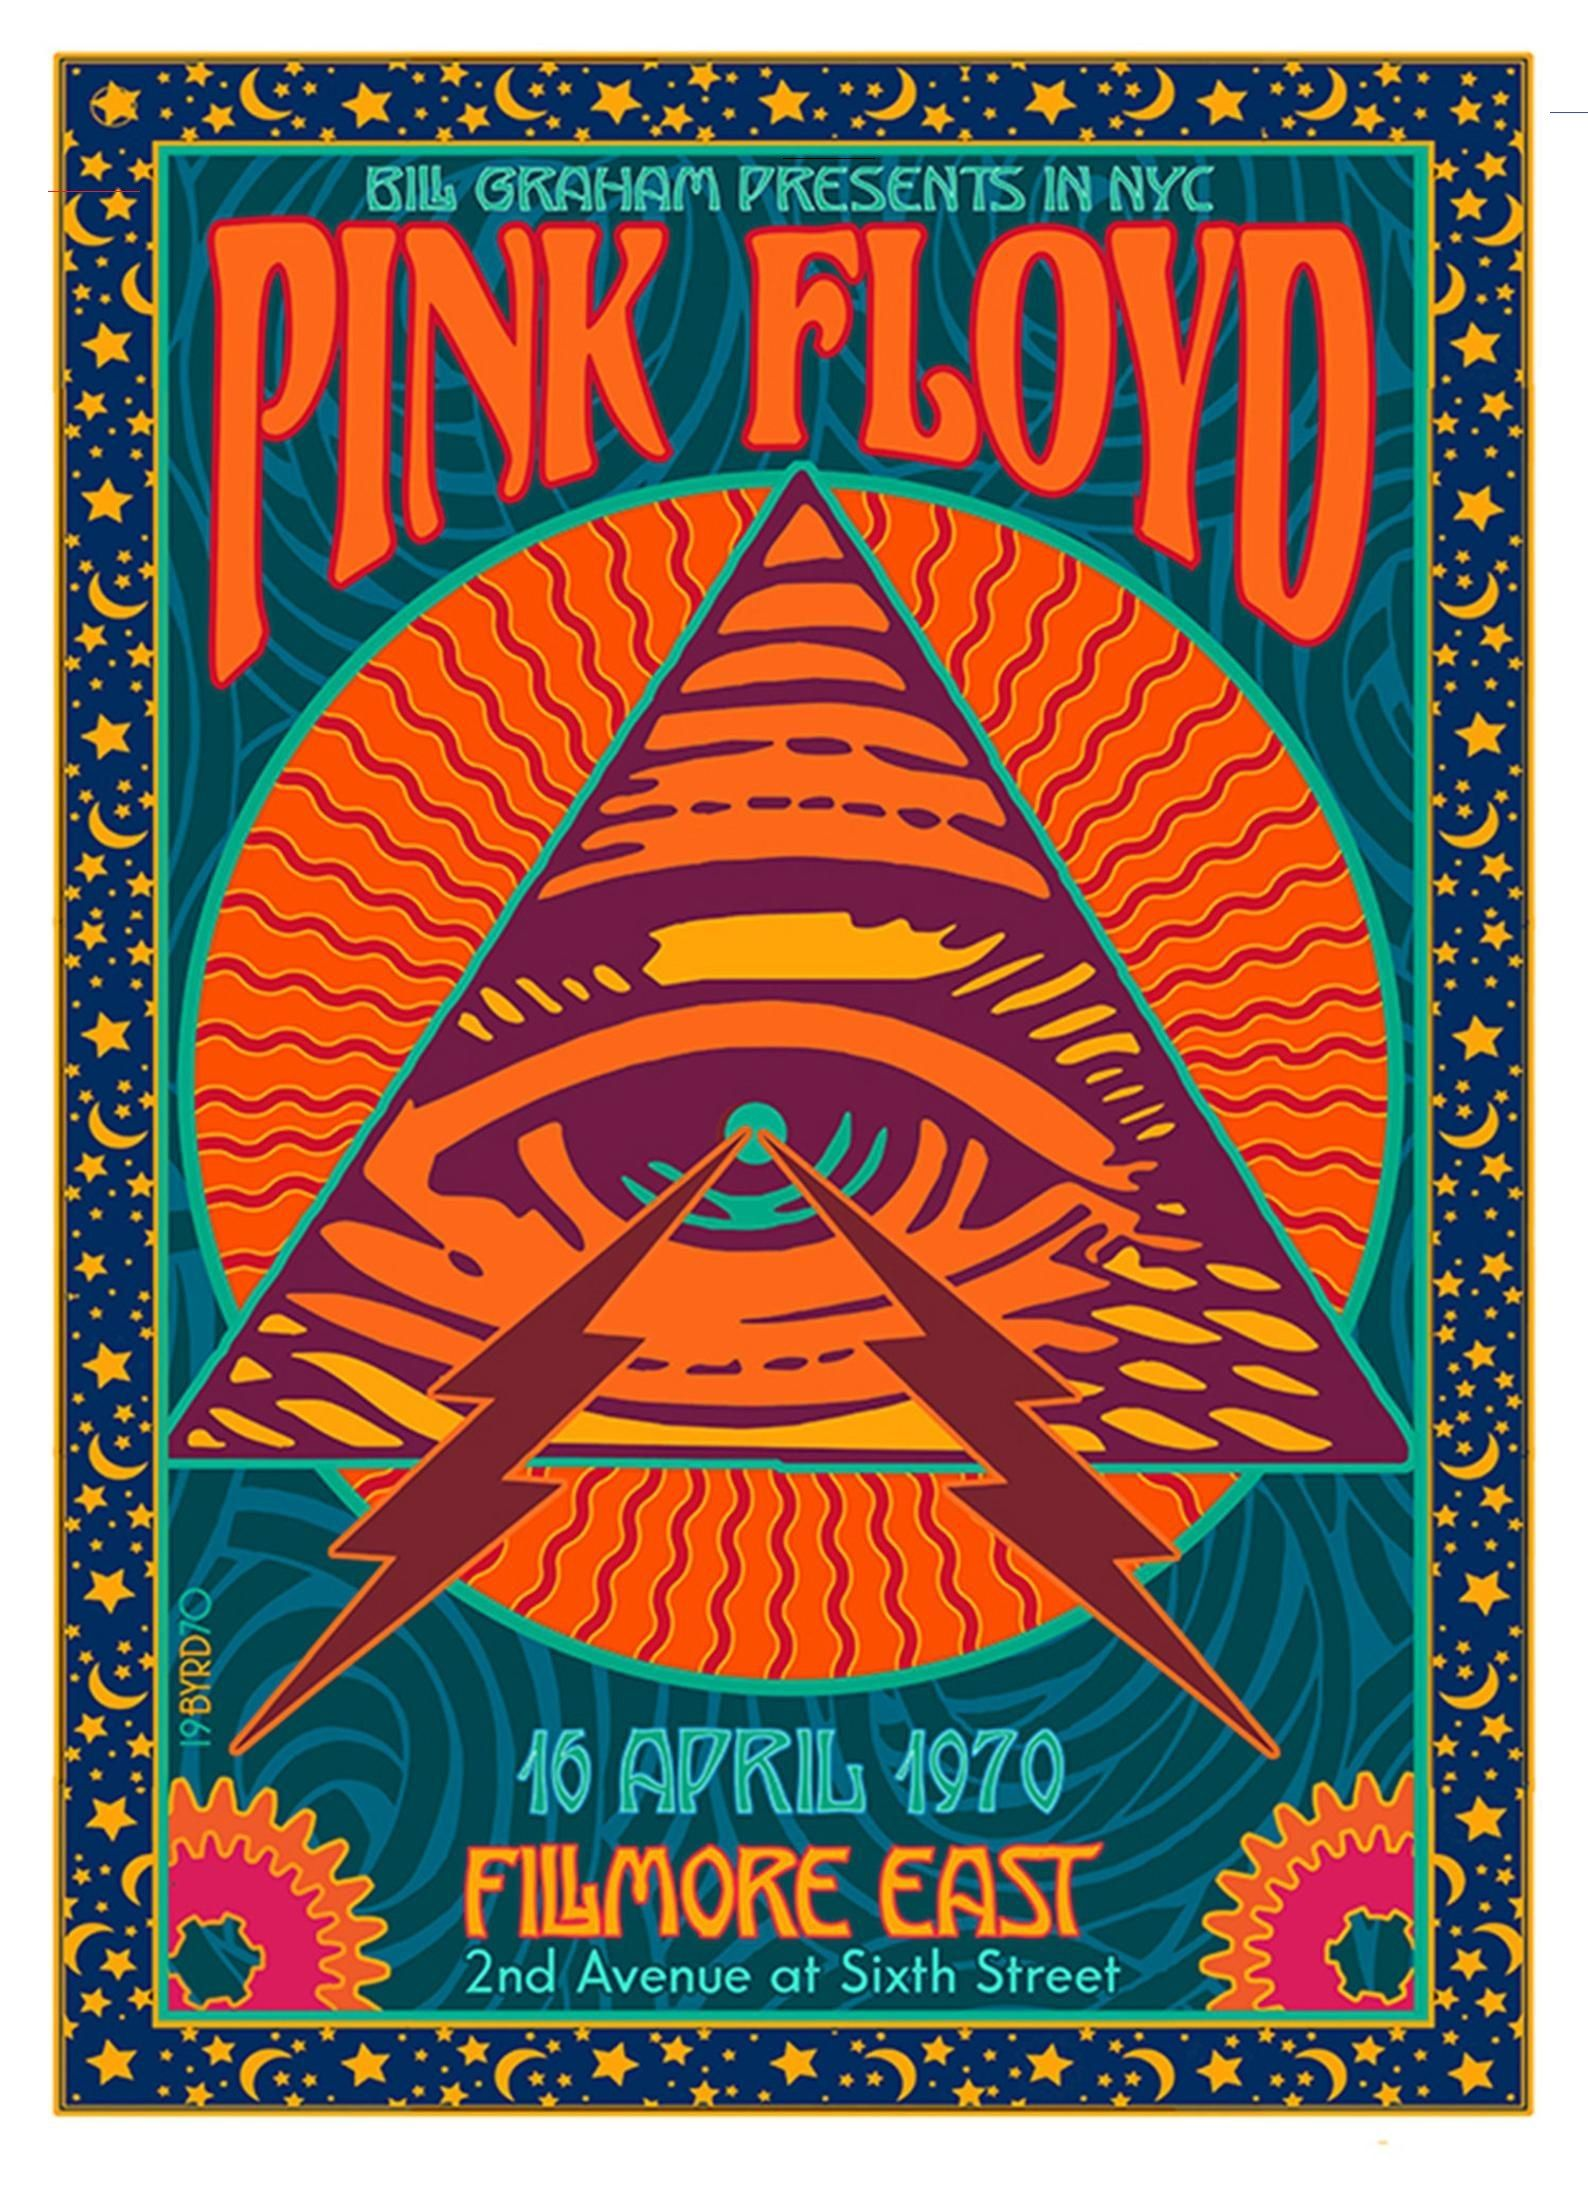 Pink floyd at the fillmore east 1989 etsy